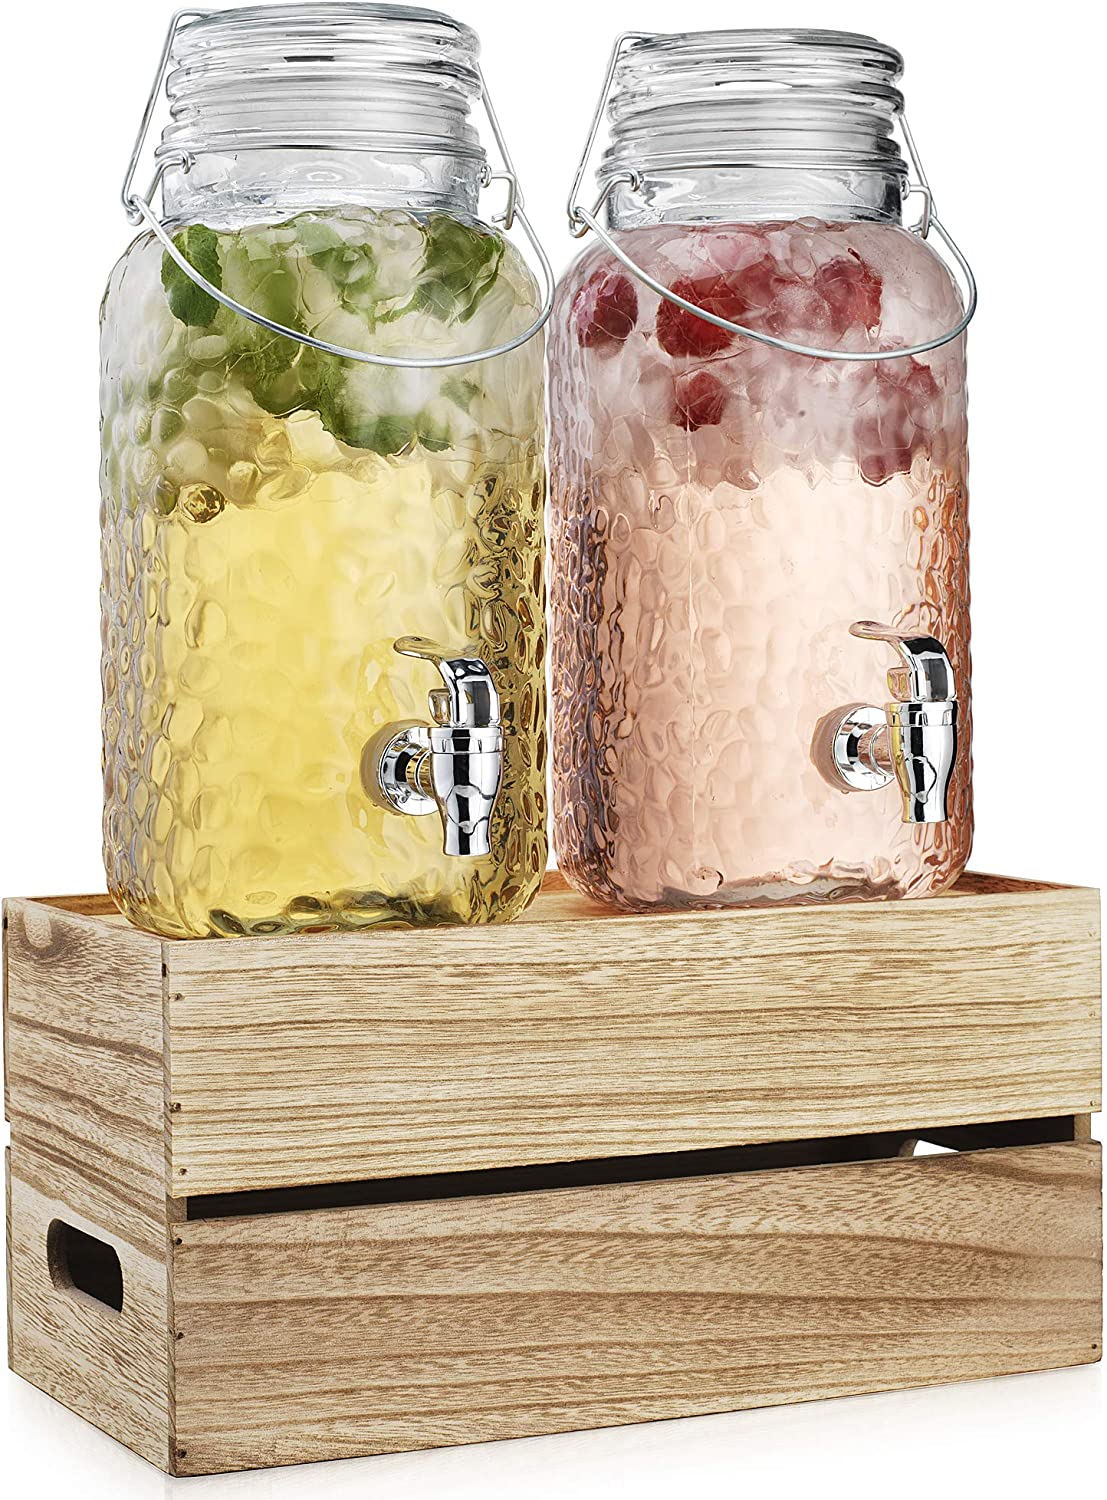 Two (2) 1 Gallon Each Quality Ice Cold Hammered Clear Glass Mason Jug Beverage Dispensers With Wood Display Stand- Wide Mouth Easy Filling For Outdoor, Parties & Daily Use